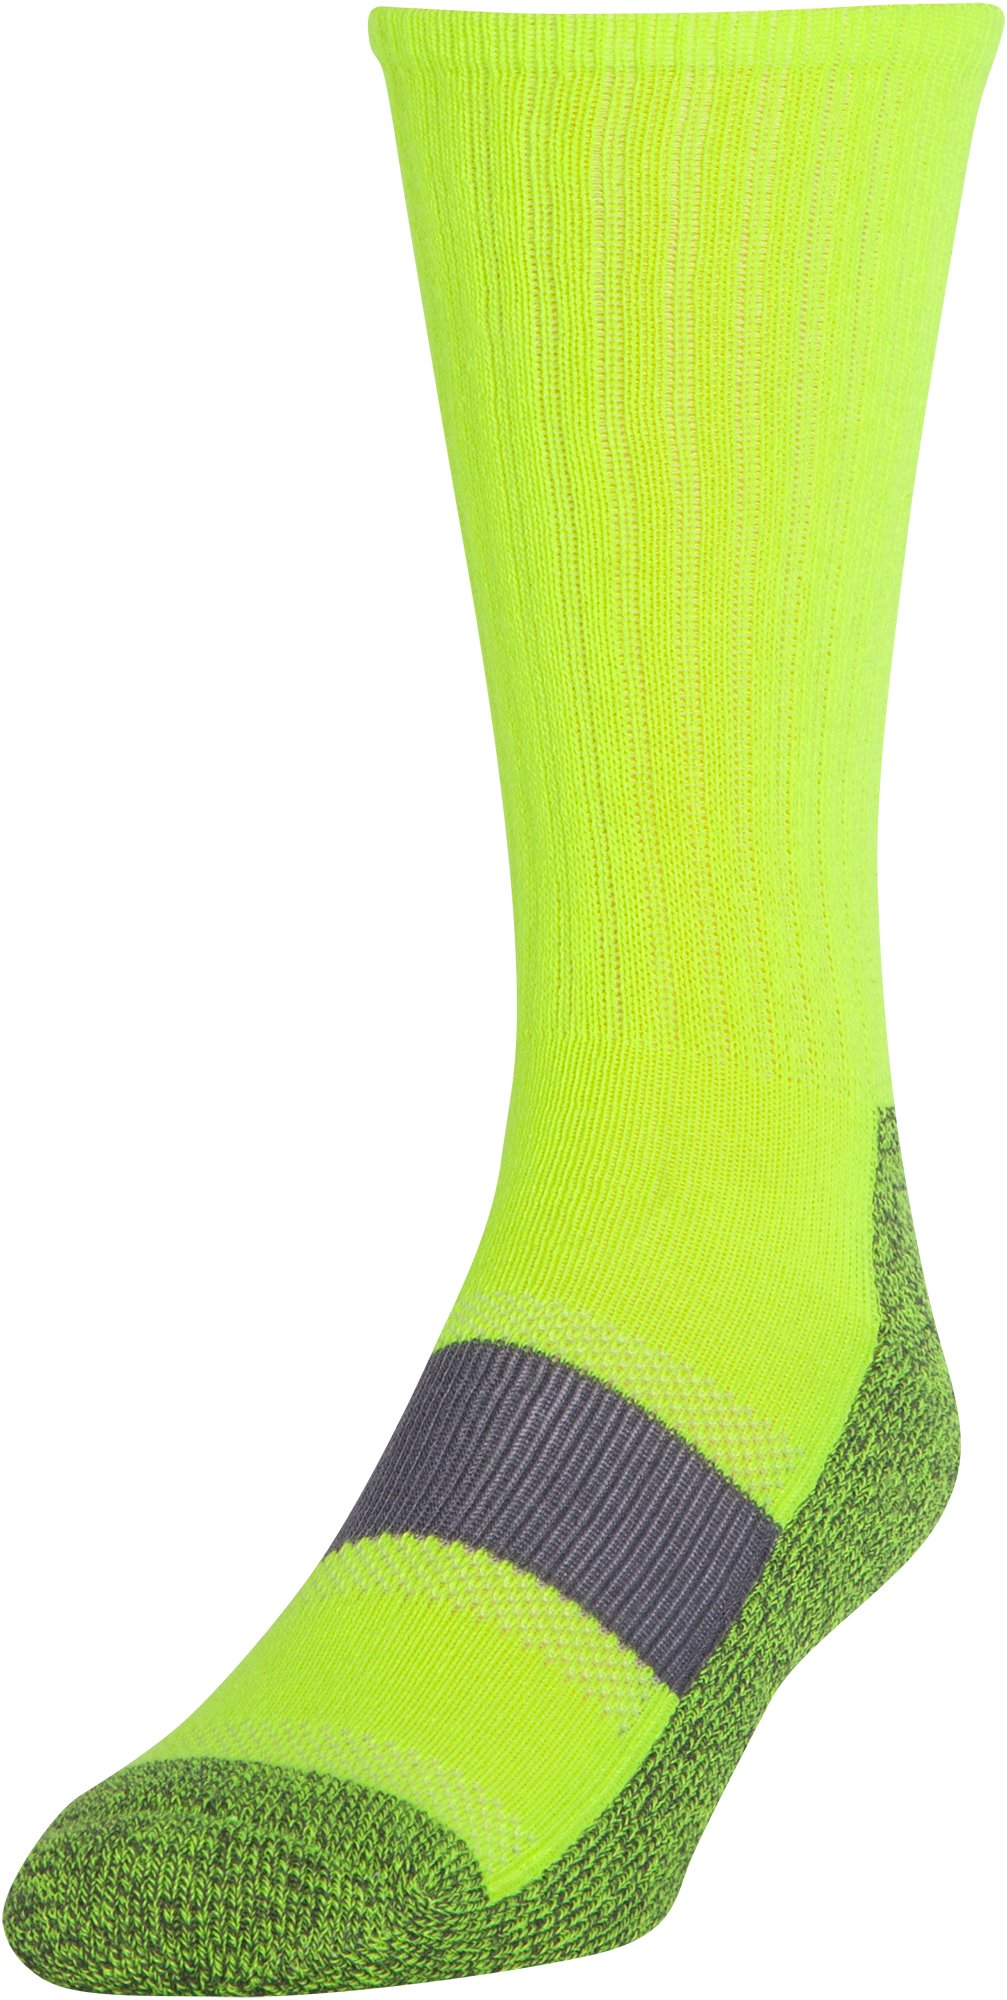 Men's UA Performance Crew Socks, High-Vis Yellow